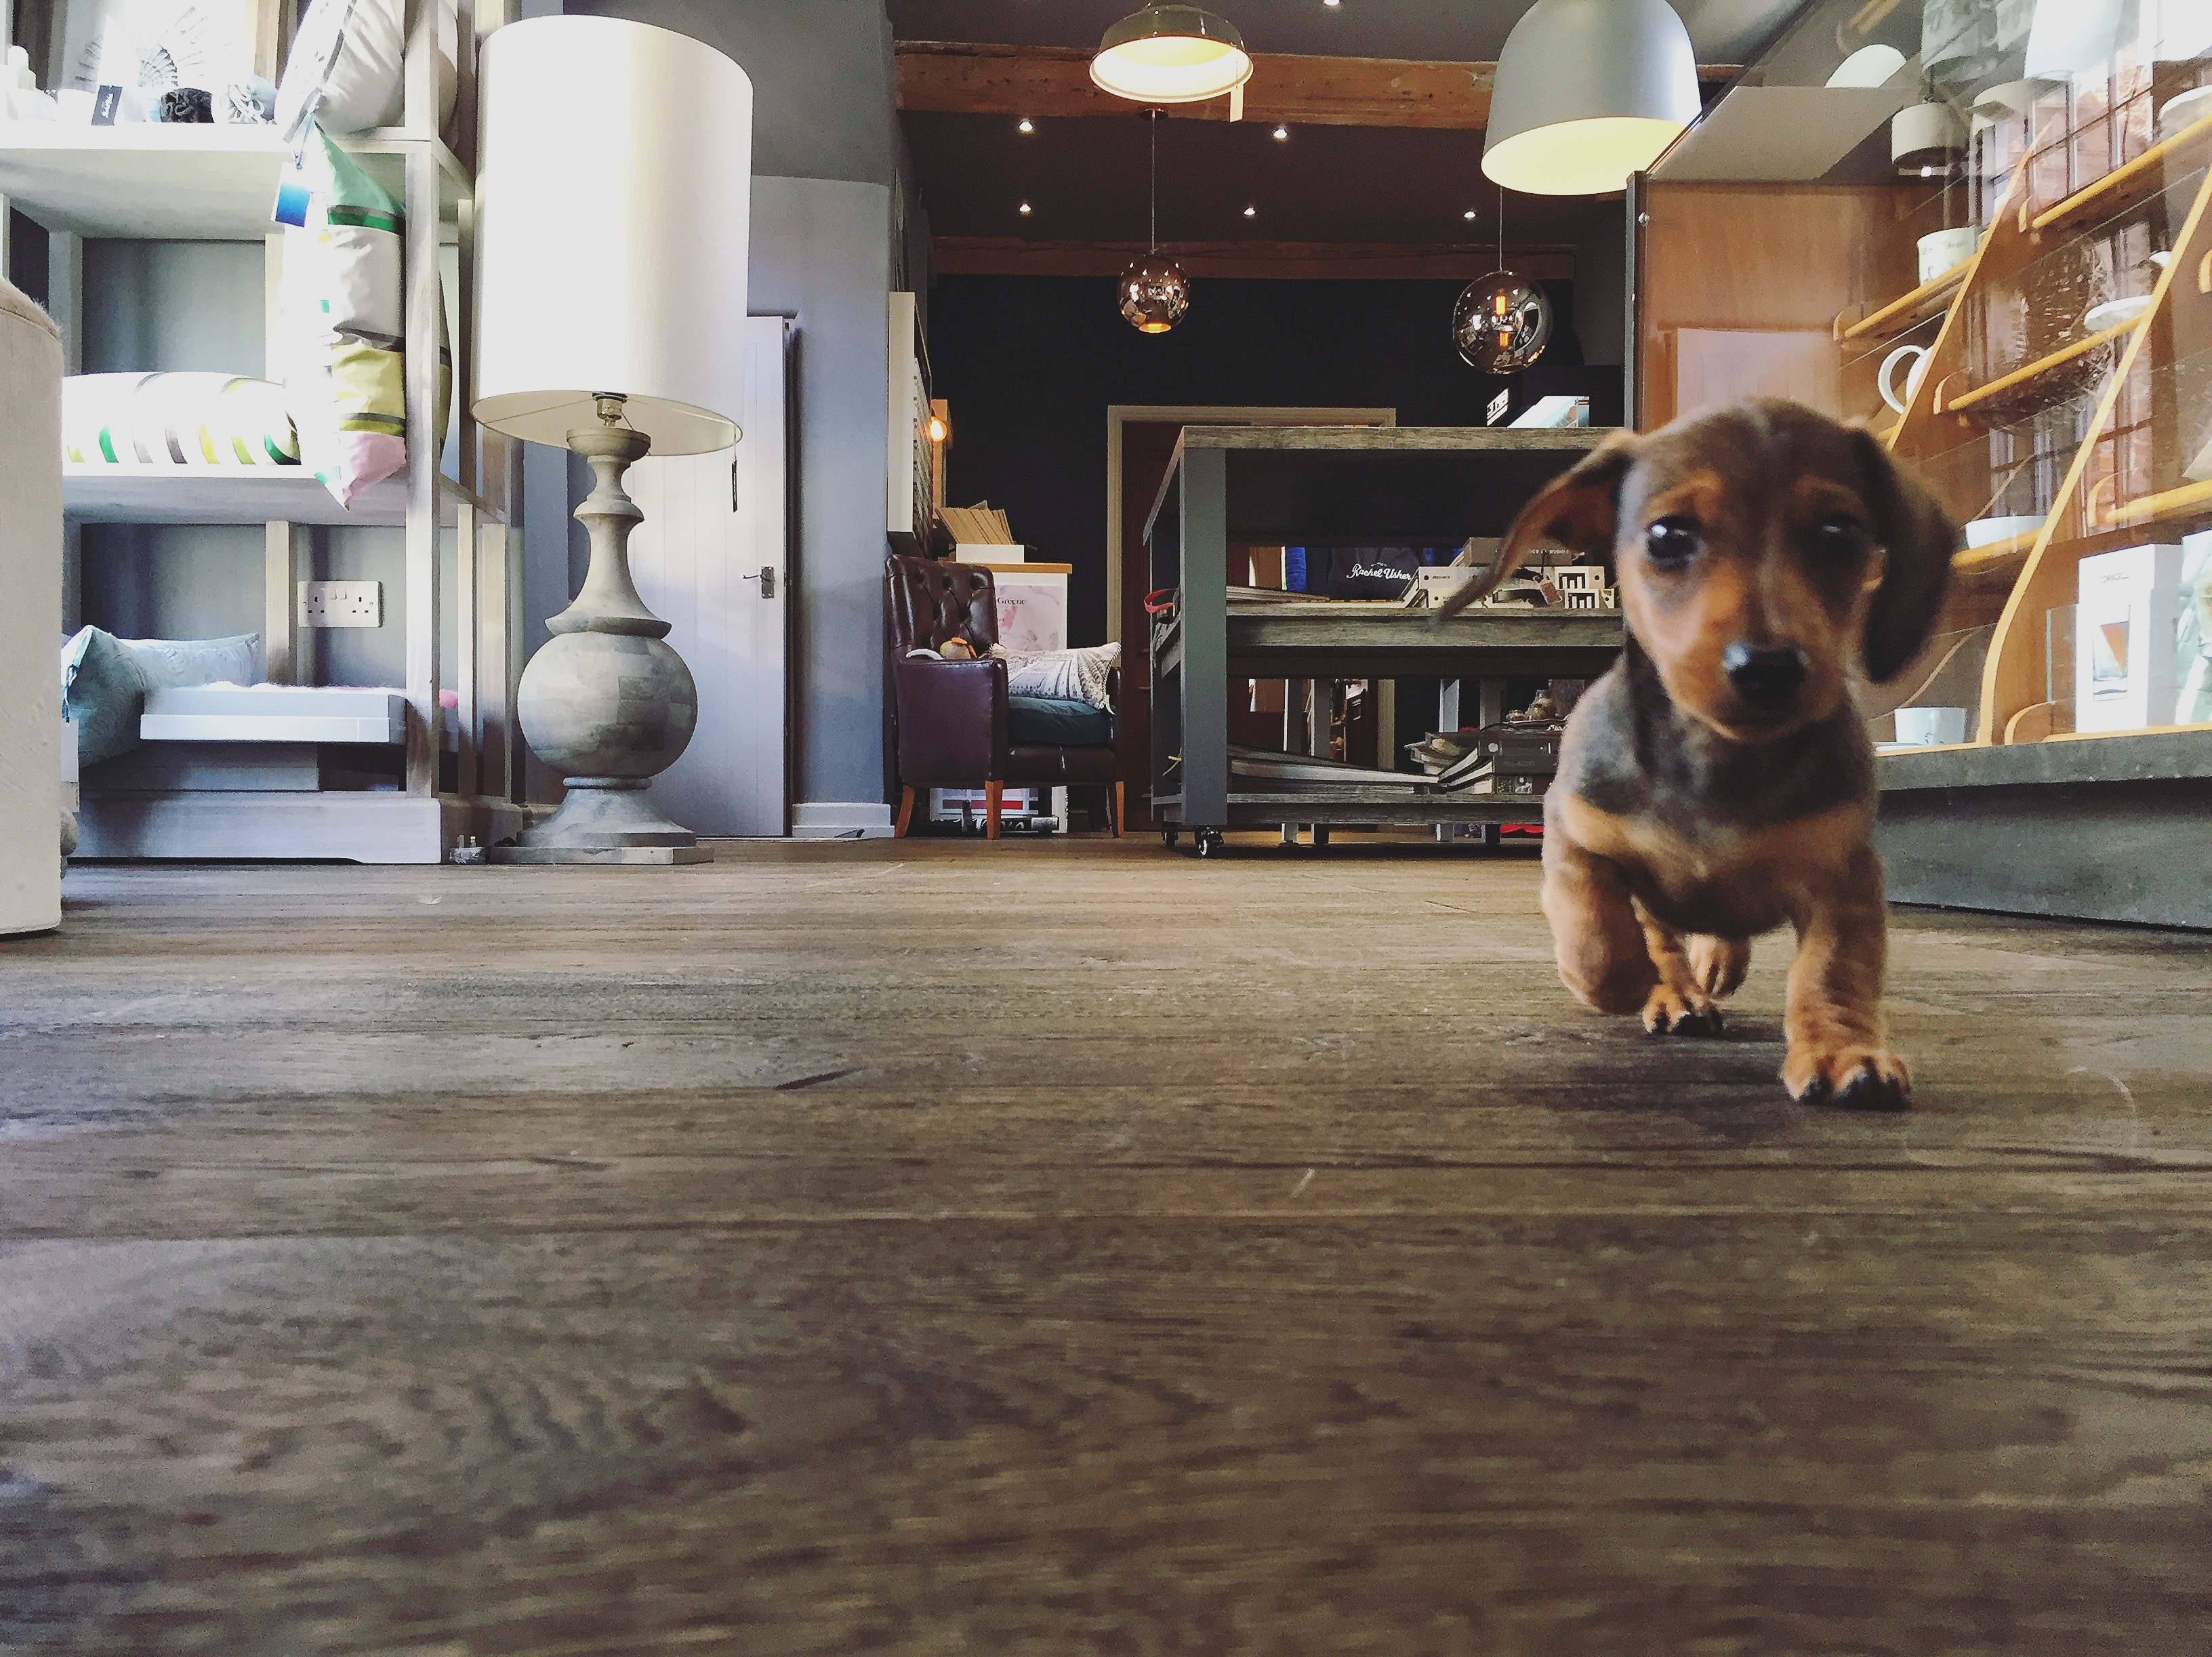 A small sausage dog running through an independent shop